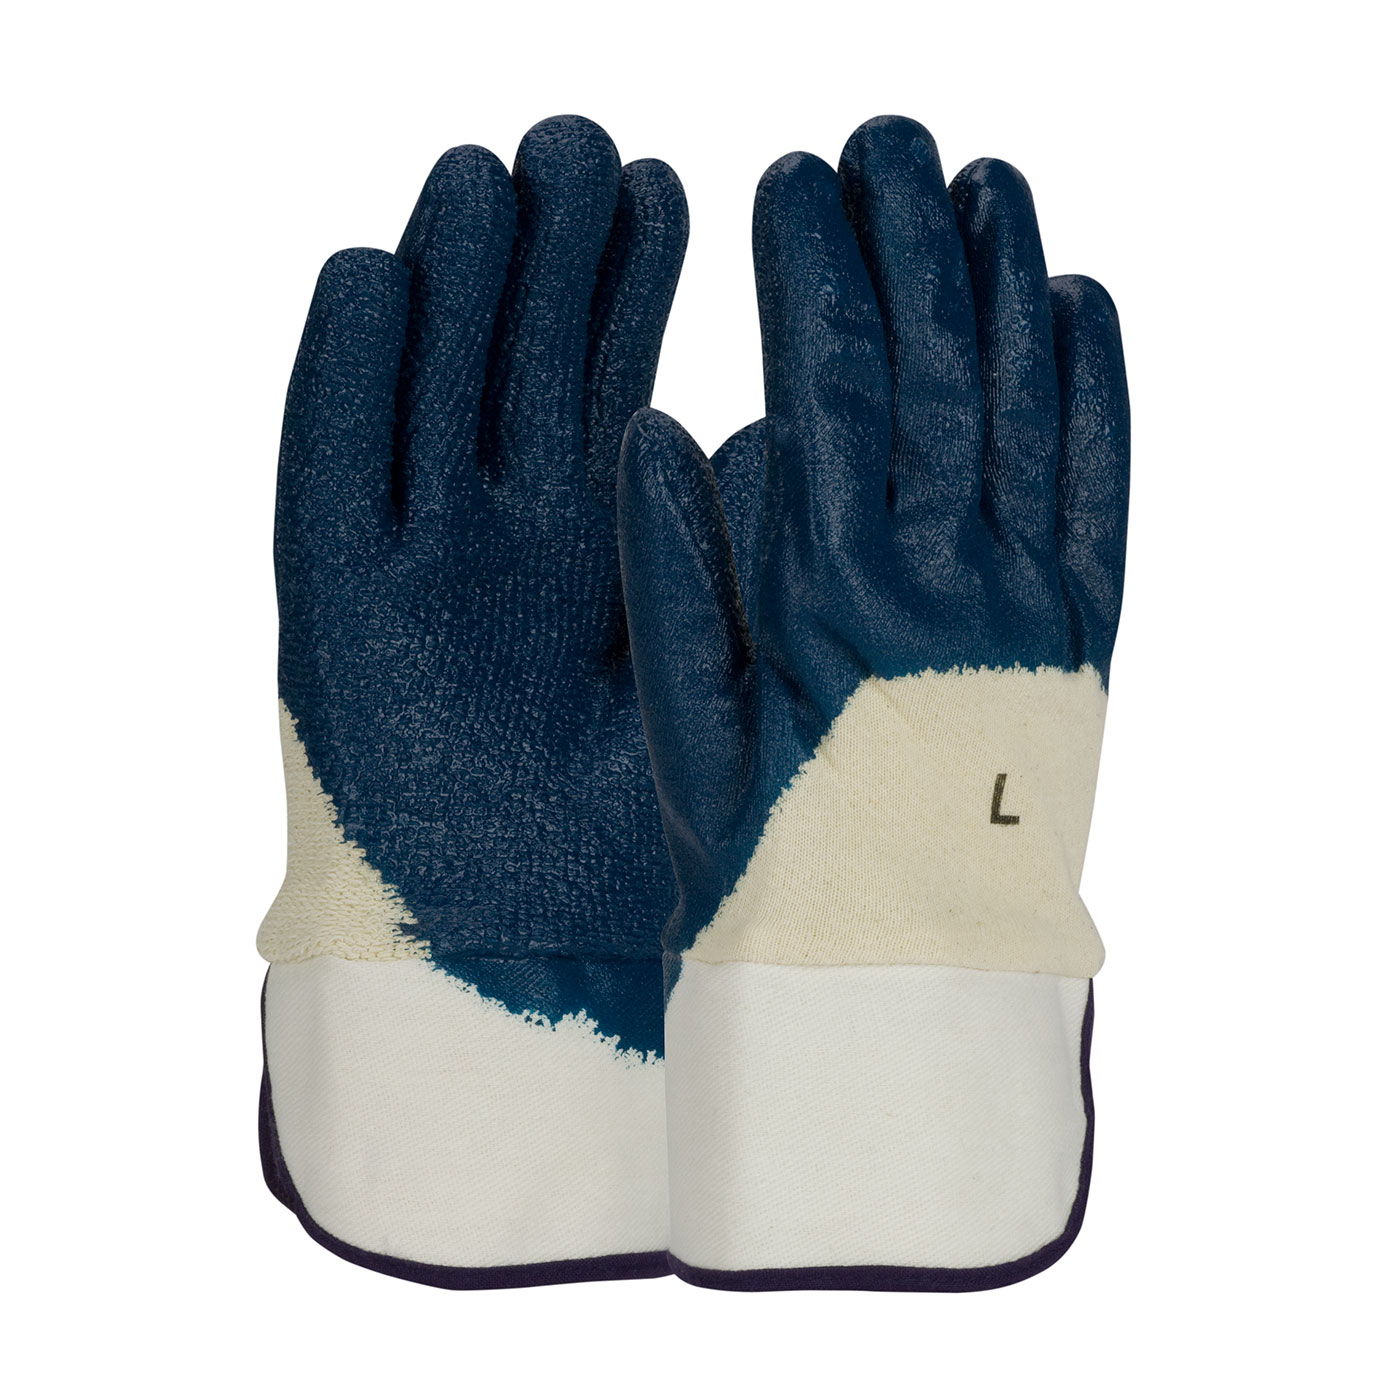 56-3145  PIP® ArmorGrip® Terry Lined Nitrile Dipped Glove with Rough Grip Texture and Safety Cuffs